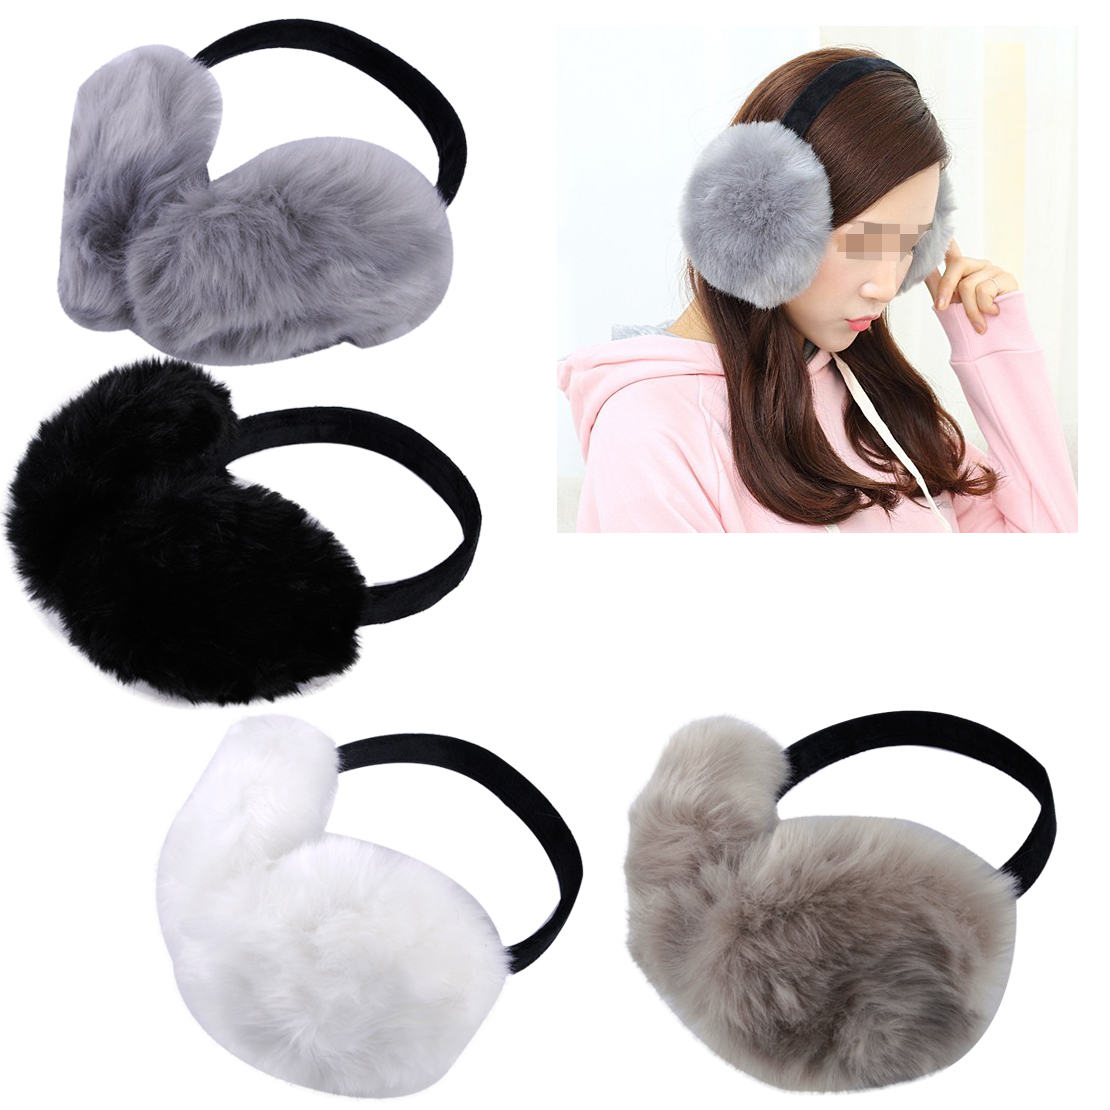 Women Winter Earmuff Genuine Farm Imitation Rabbit Fur Earmuffs Ear Cover Warmer Ear Muff Earlap Headband